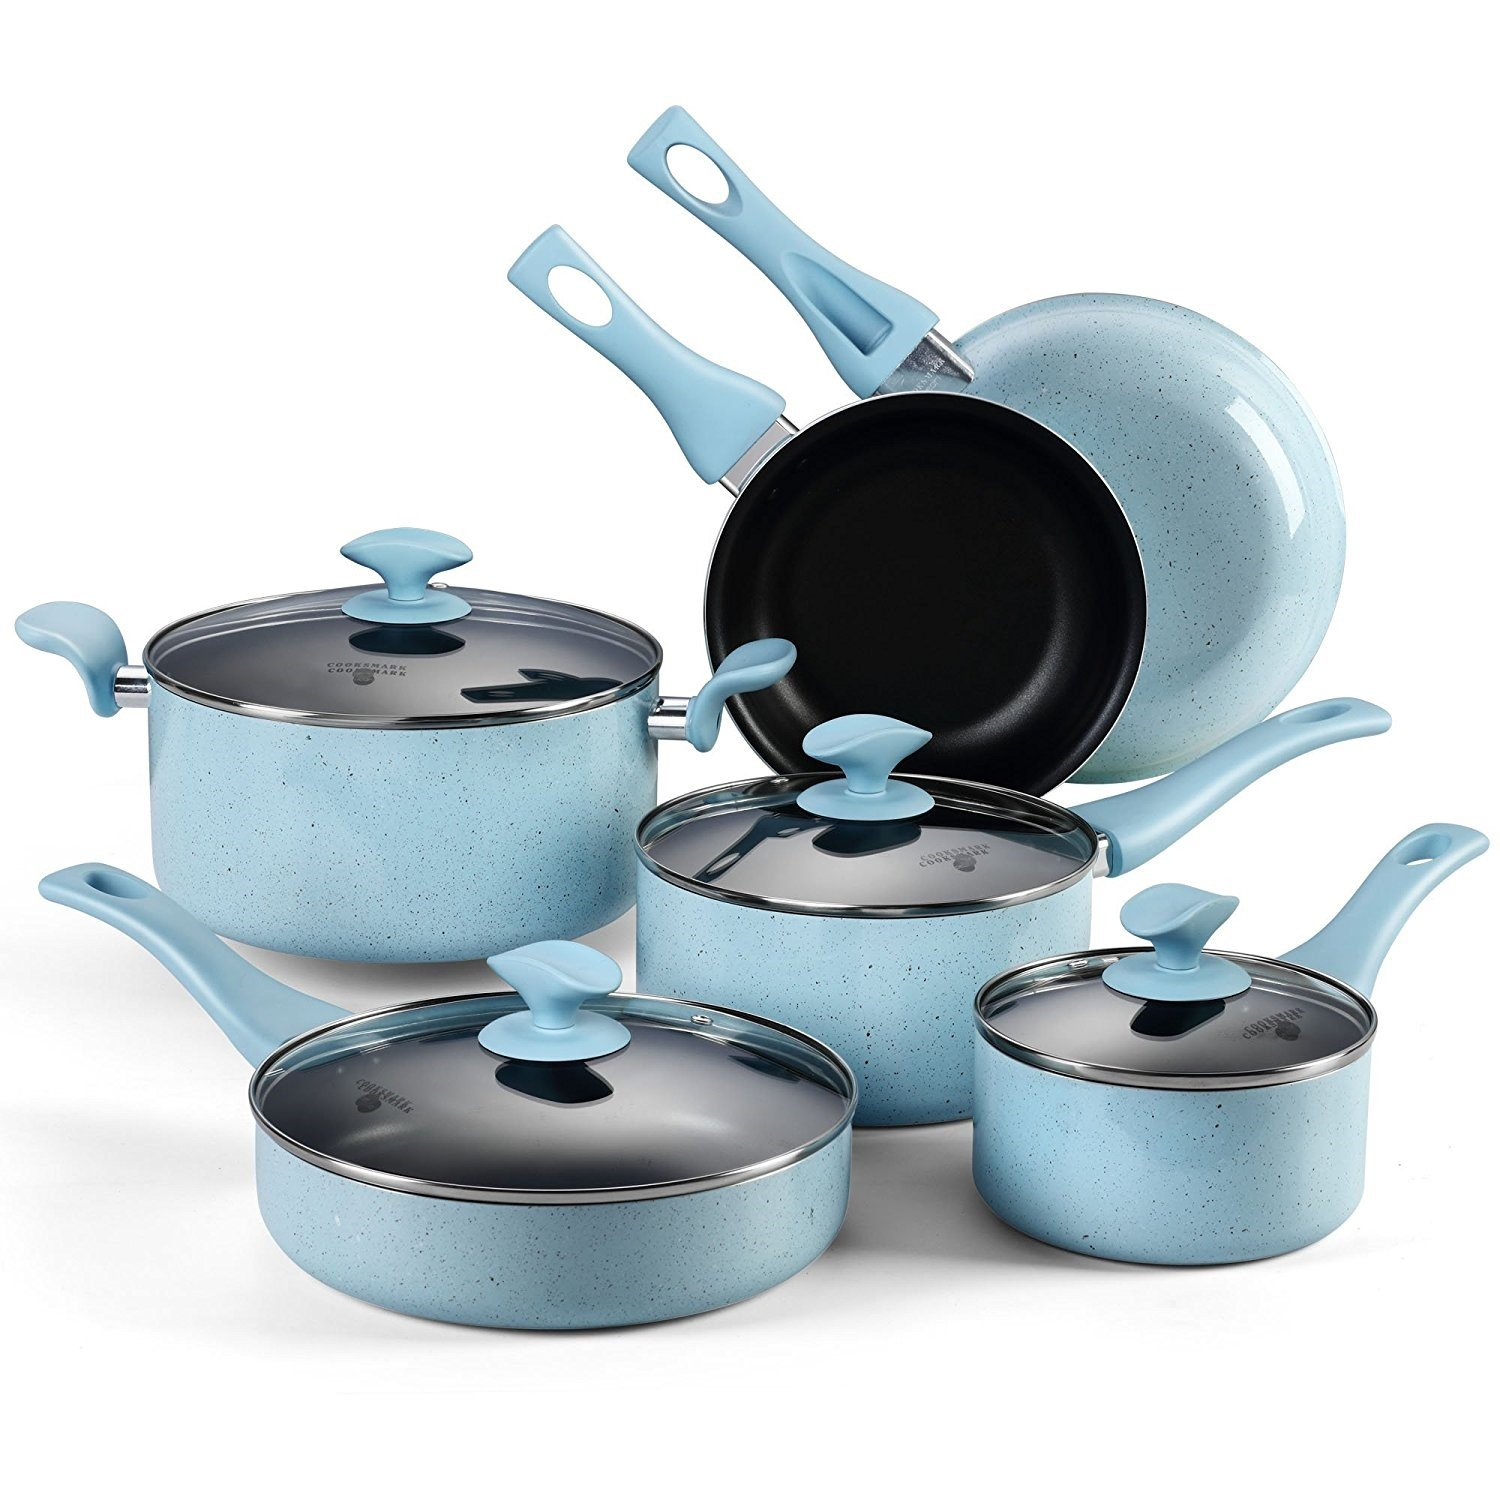 Is Ceramic Cookware Healthy And Safe To Make Food On